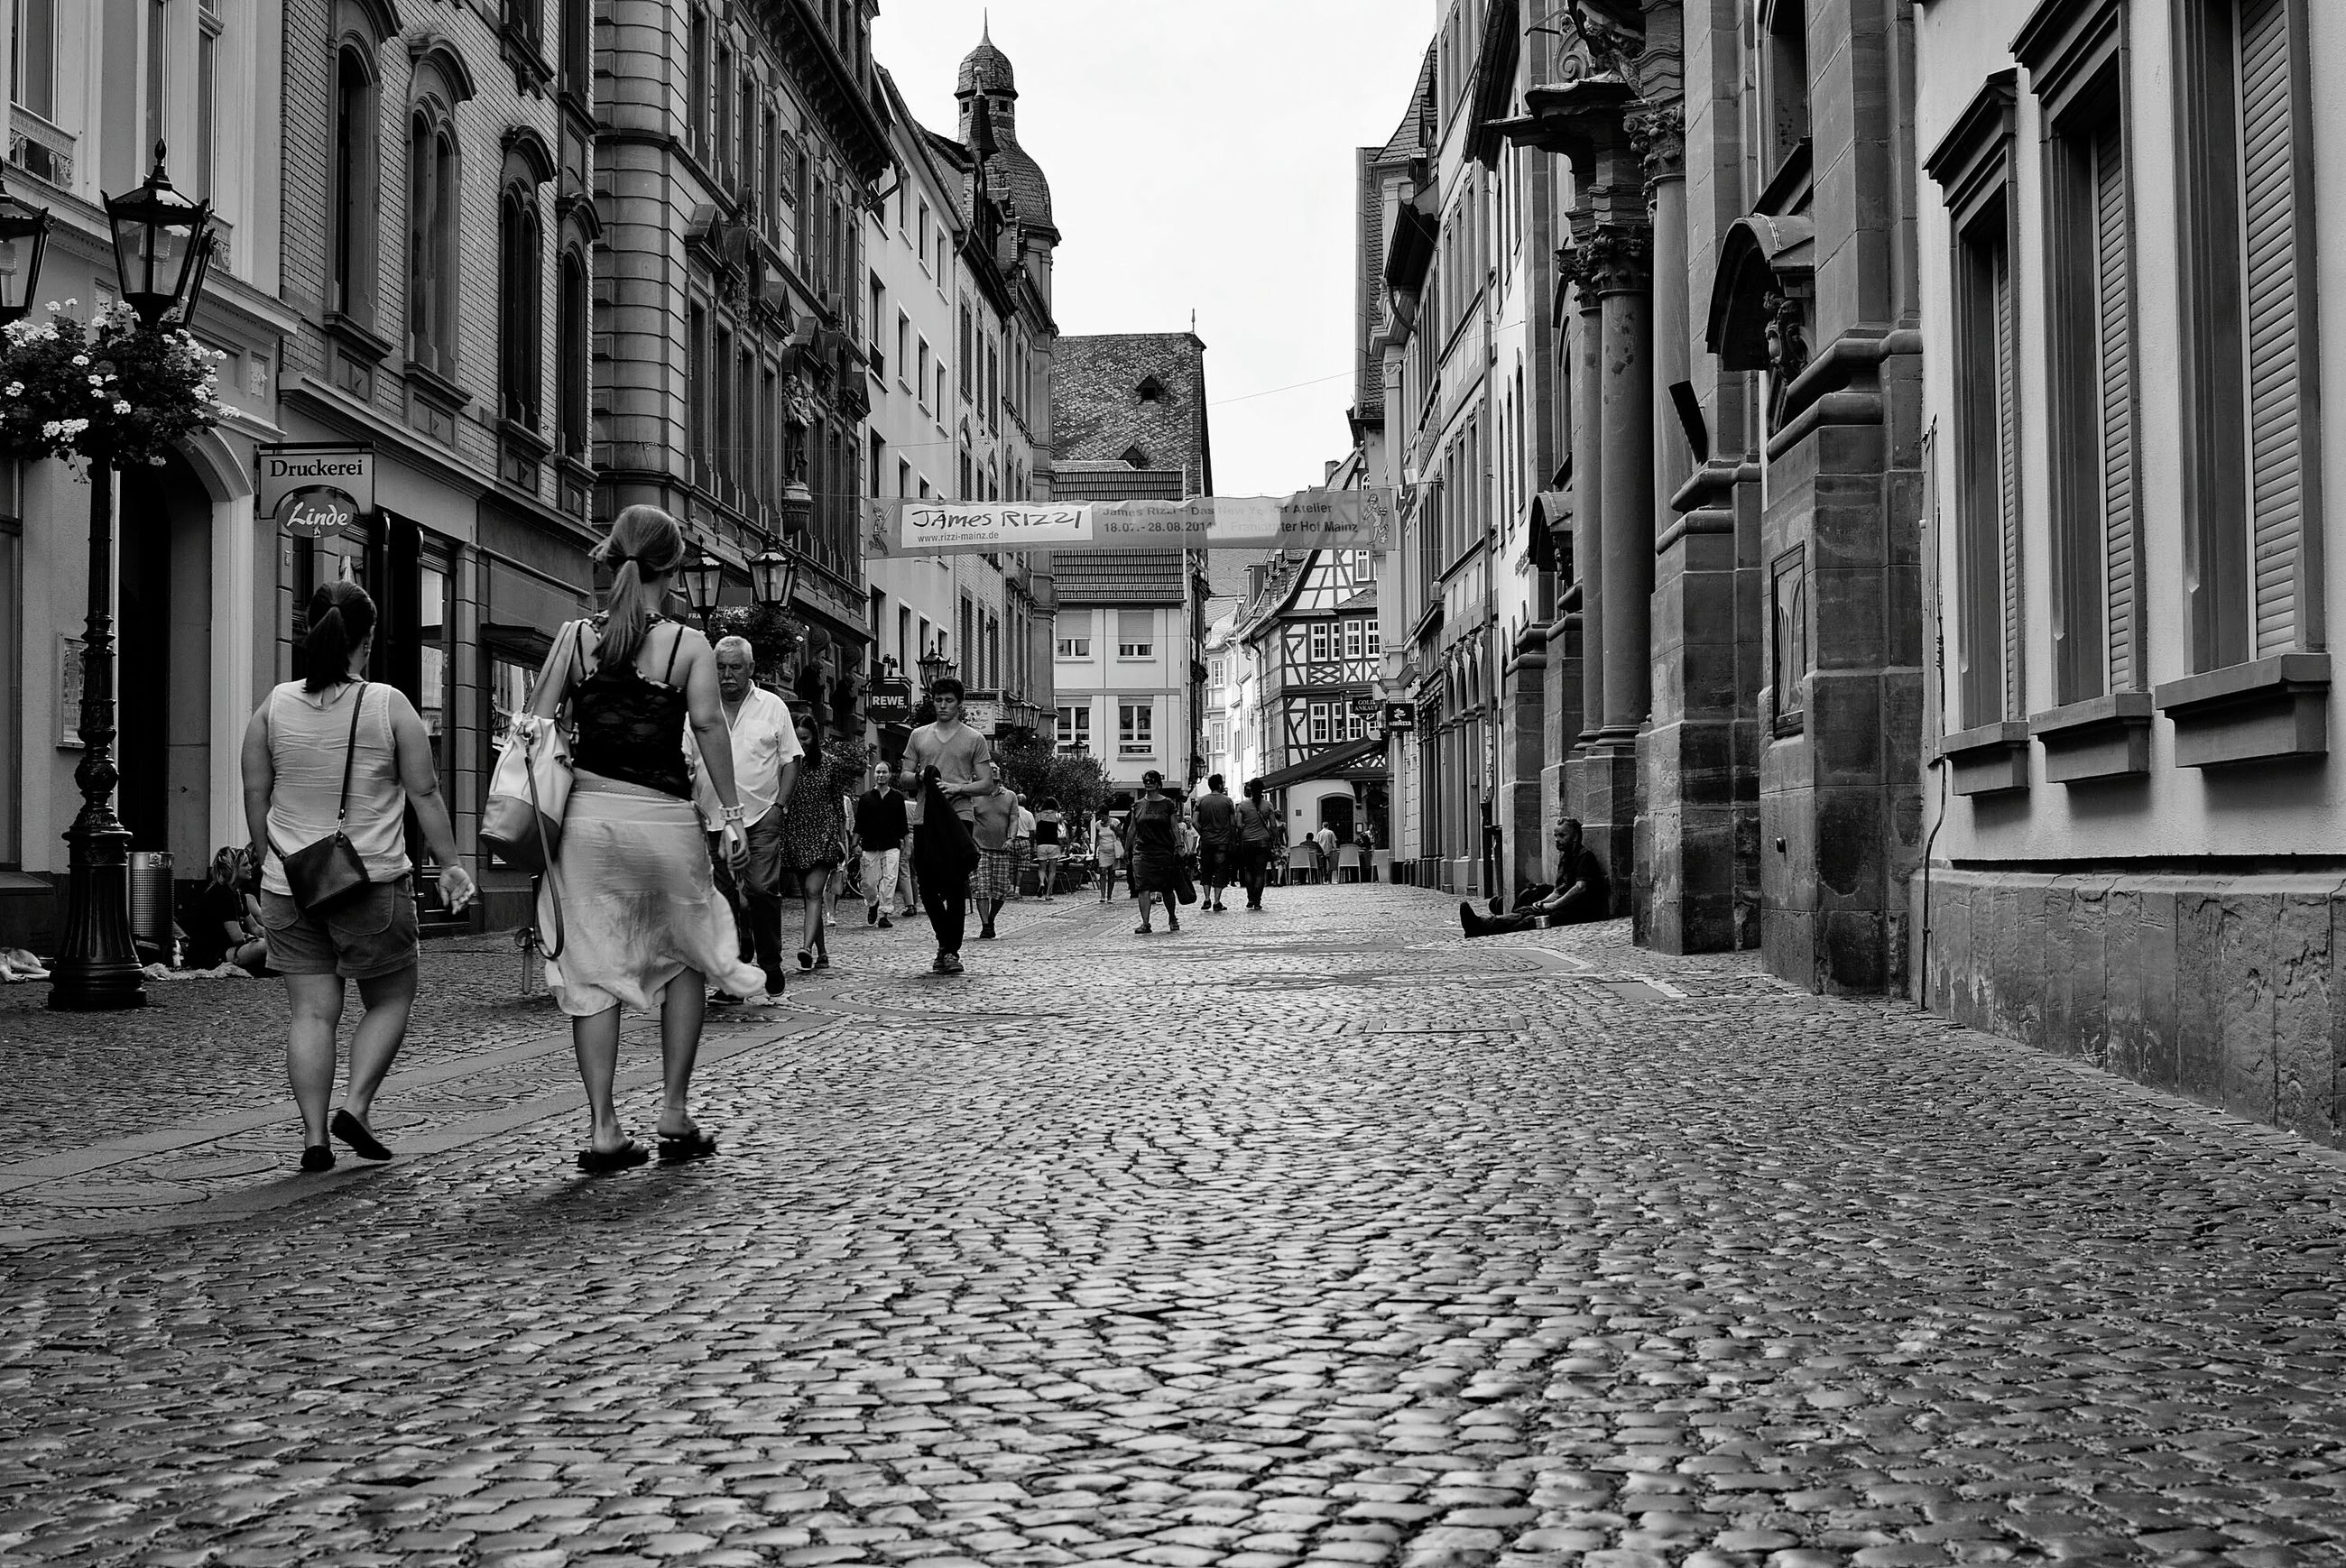 building exterior, architecture, built structure, the way forward, street, walking, city, men, cobblestone, person, diminishing perspective, building, city life, lifestyles, residential building, vanishing point, residential structure, alley, incidental people